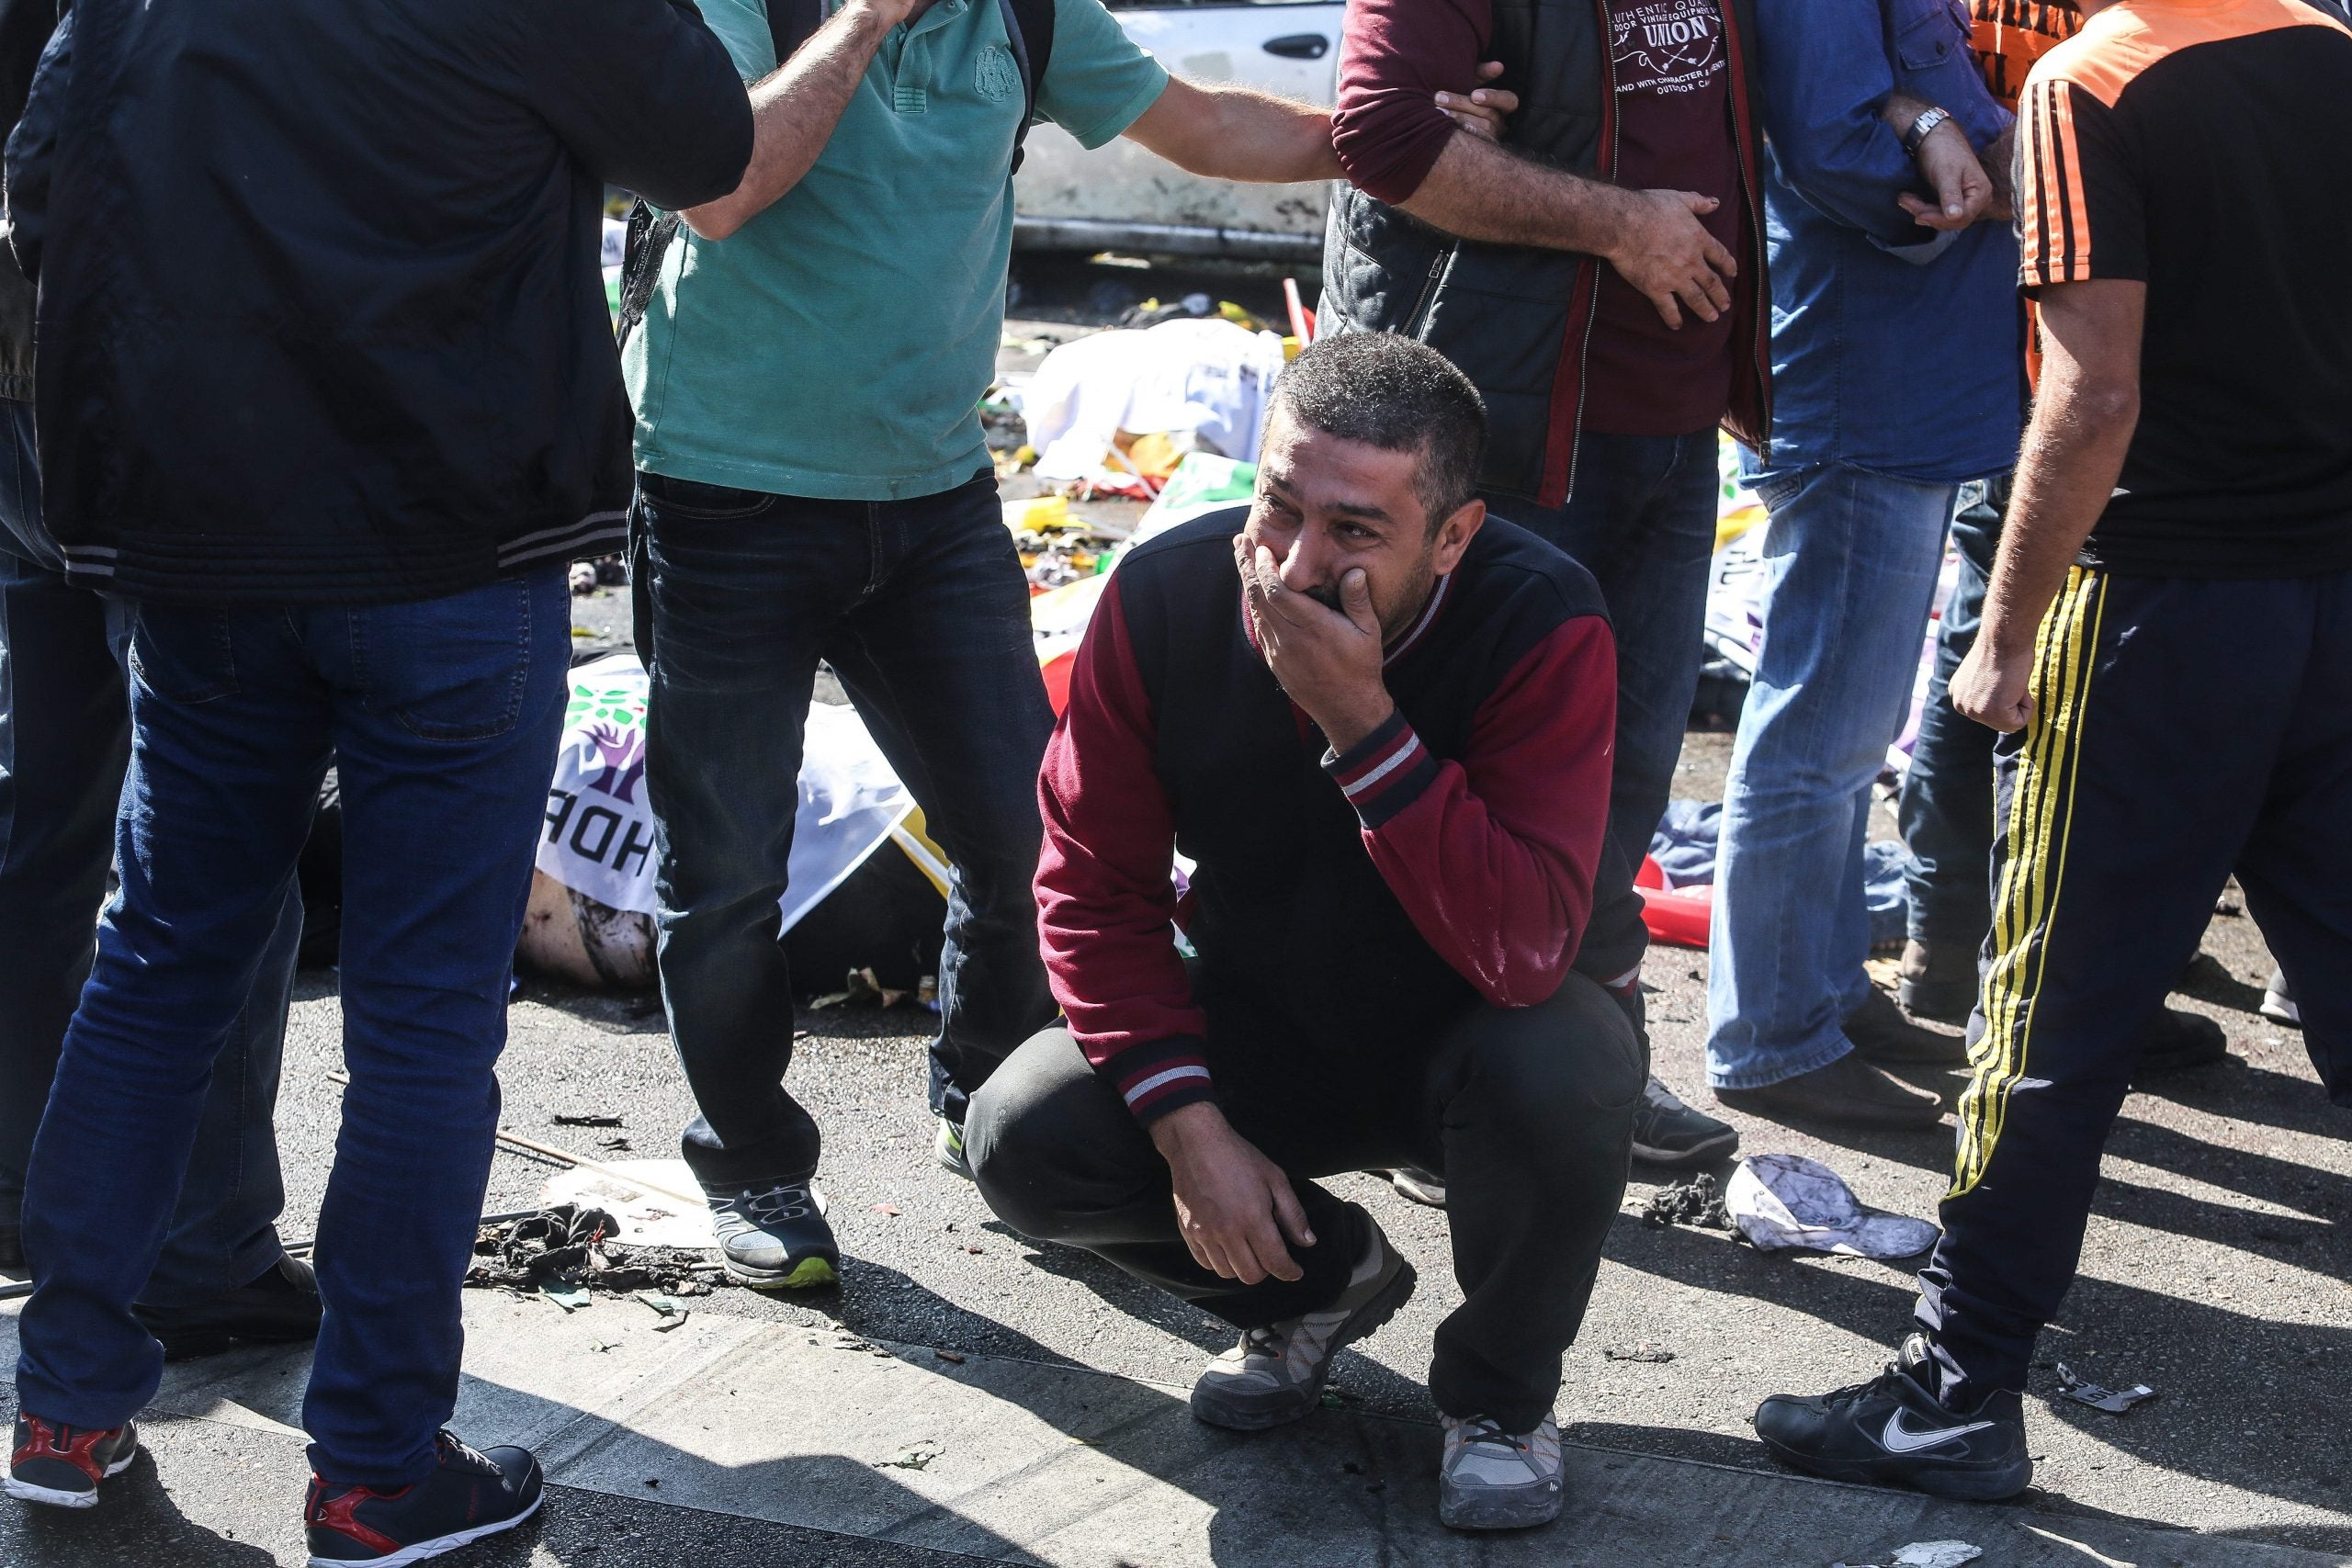 Fears of instability after the Ankara attack